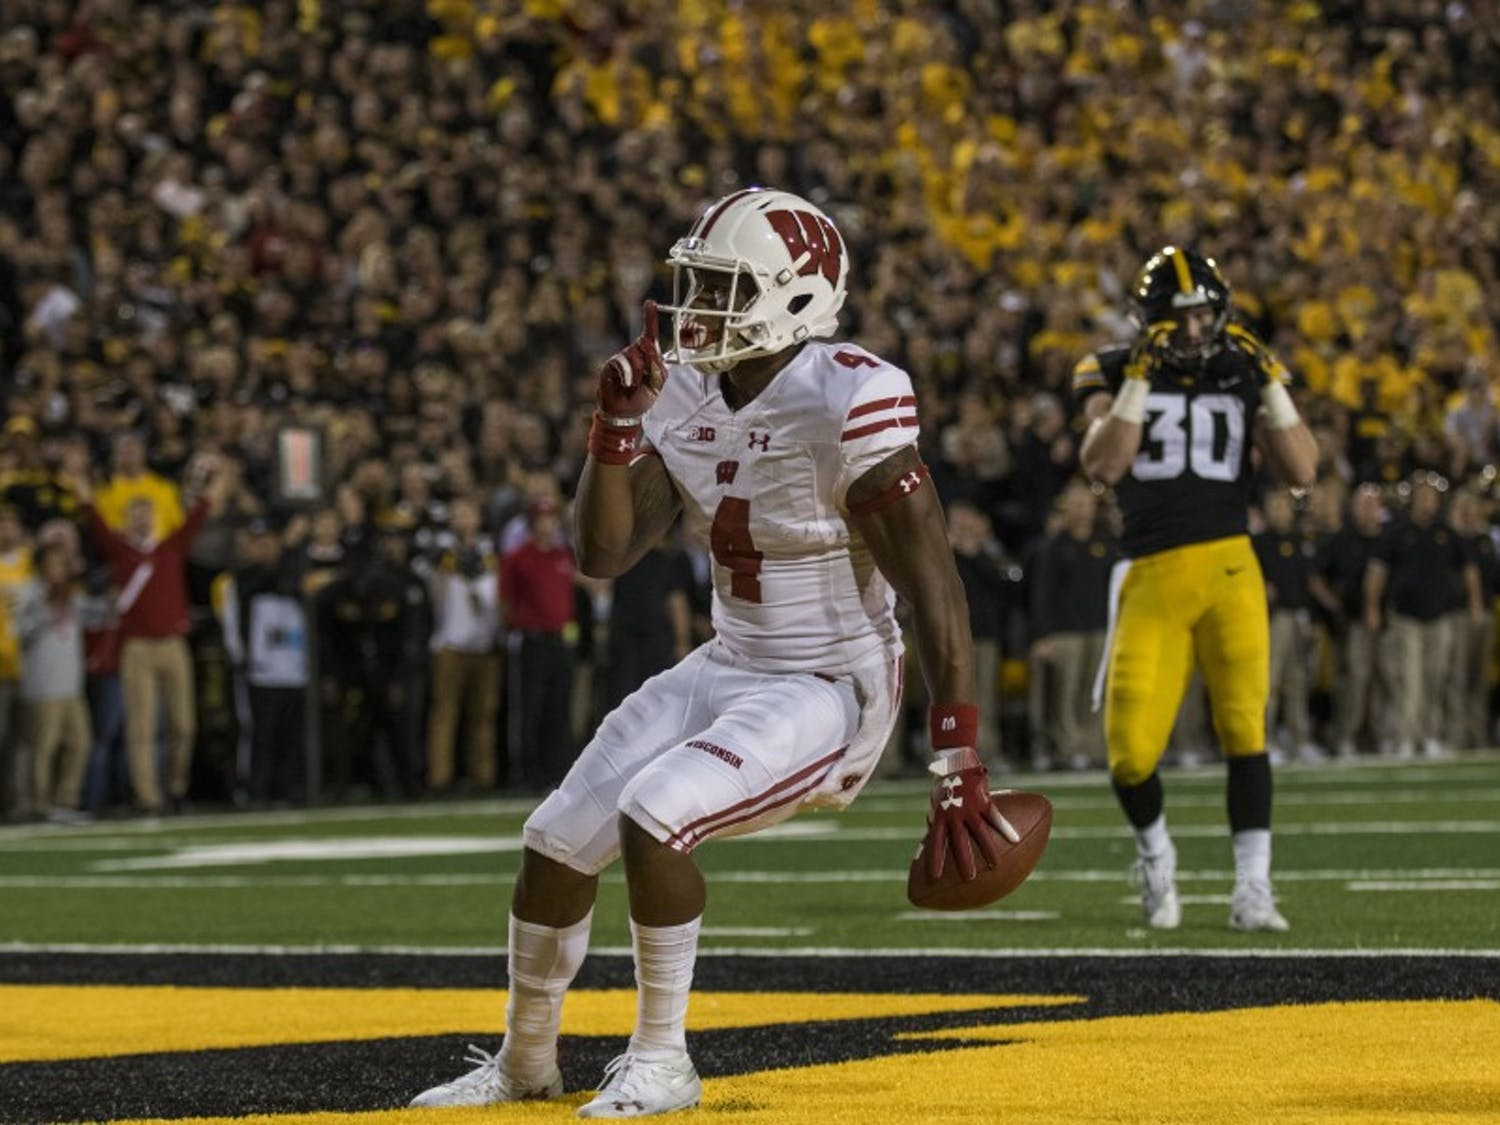 Junior wide receiver A.J. Taylor scored the touchdown to put the Badgers up 21-17 over Iowa. UW eventually won 28-17.